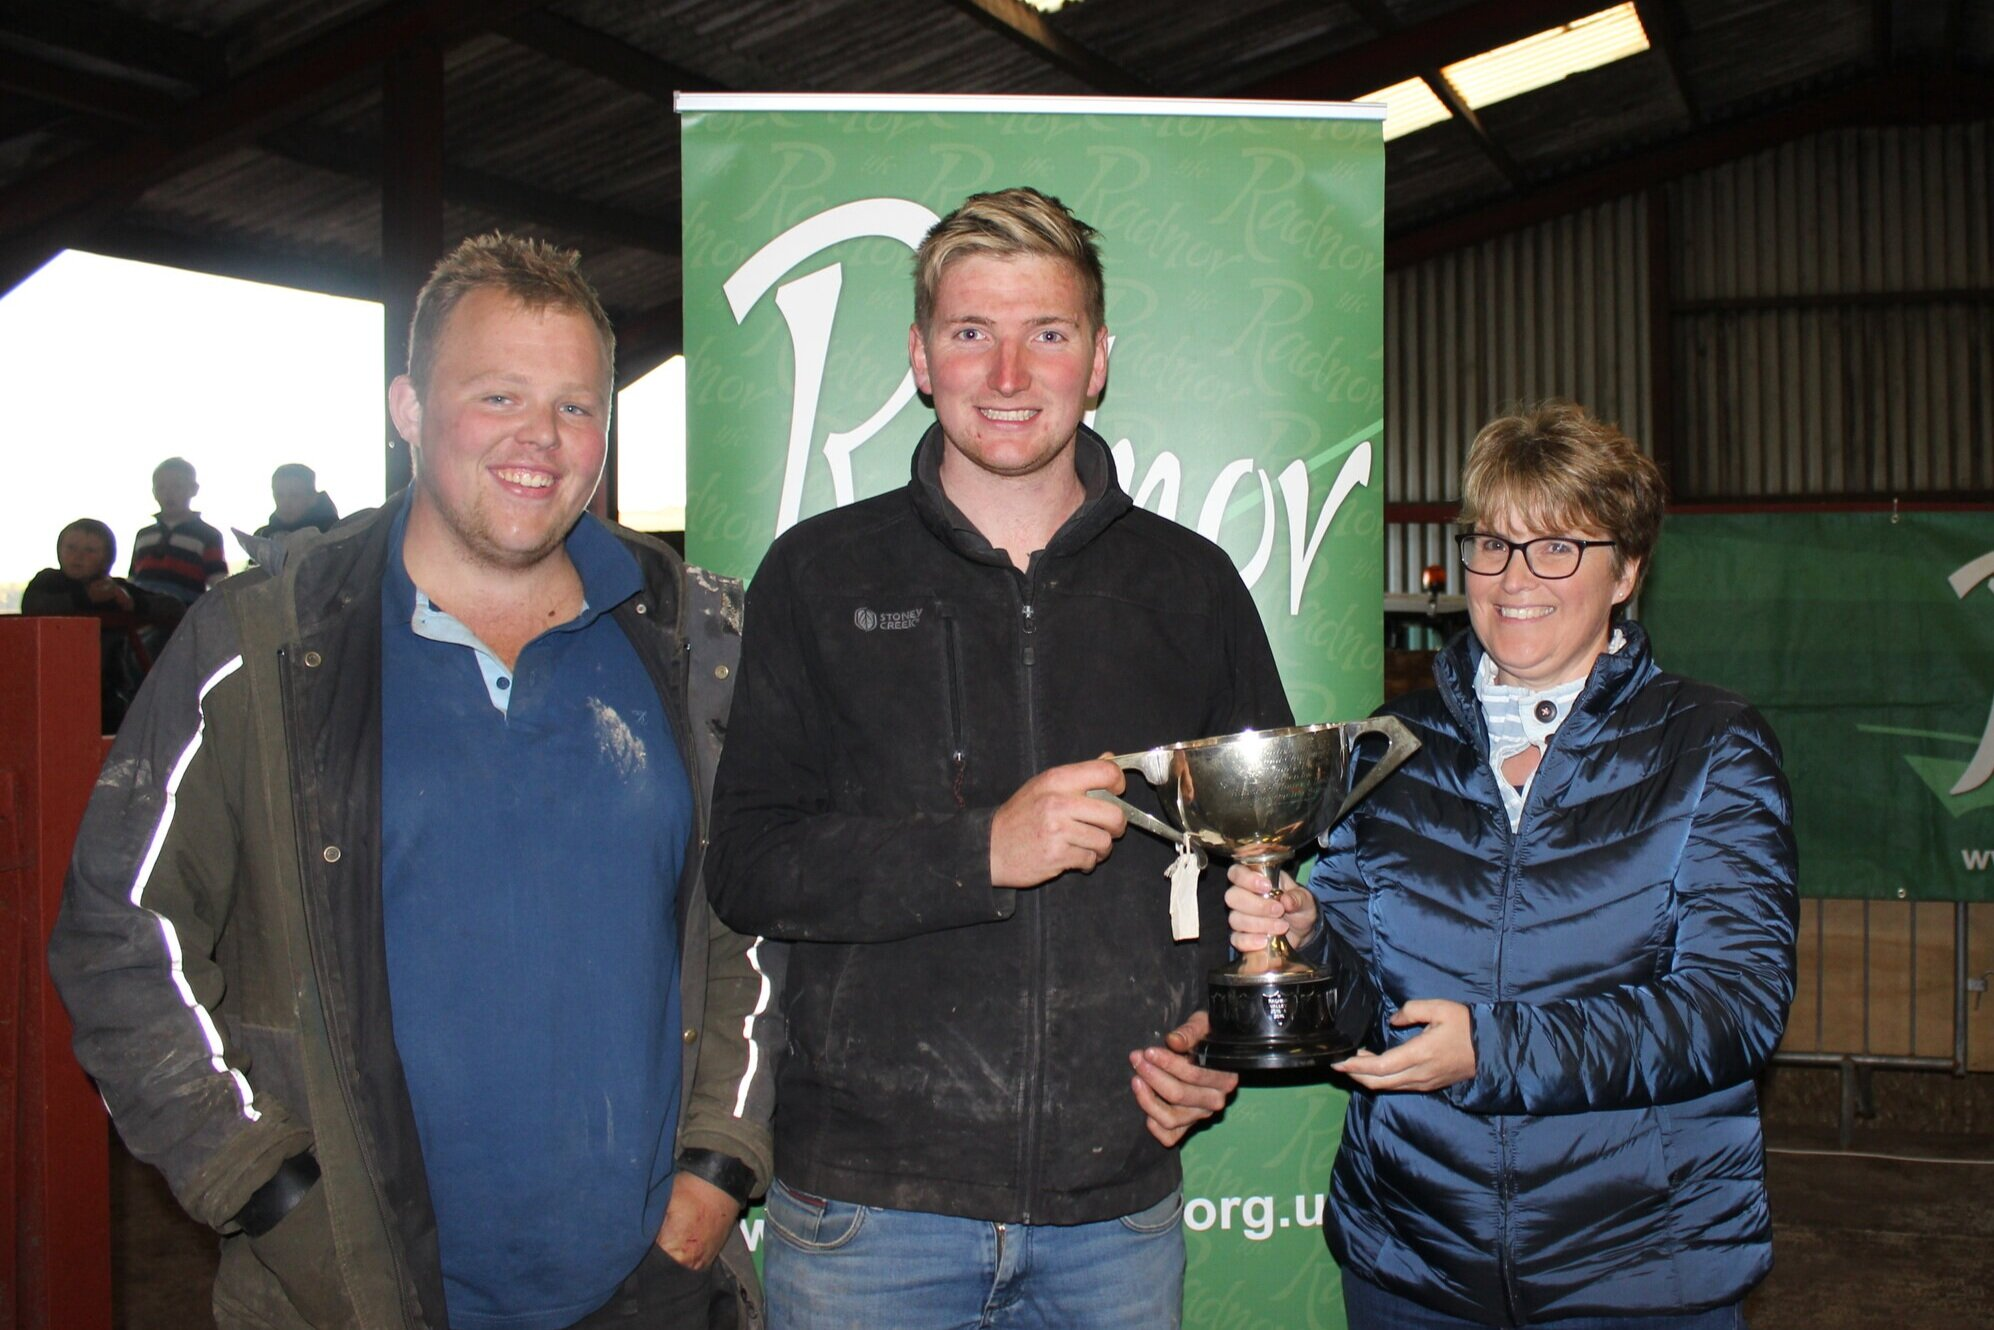 Sam Bowen & Robbie Savage, Radnor Valley YFC - Hundred House Cup for the ATV Challenge with Host, Amanda Watson